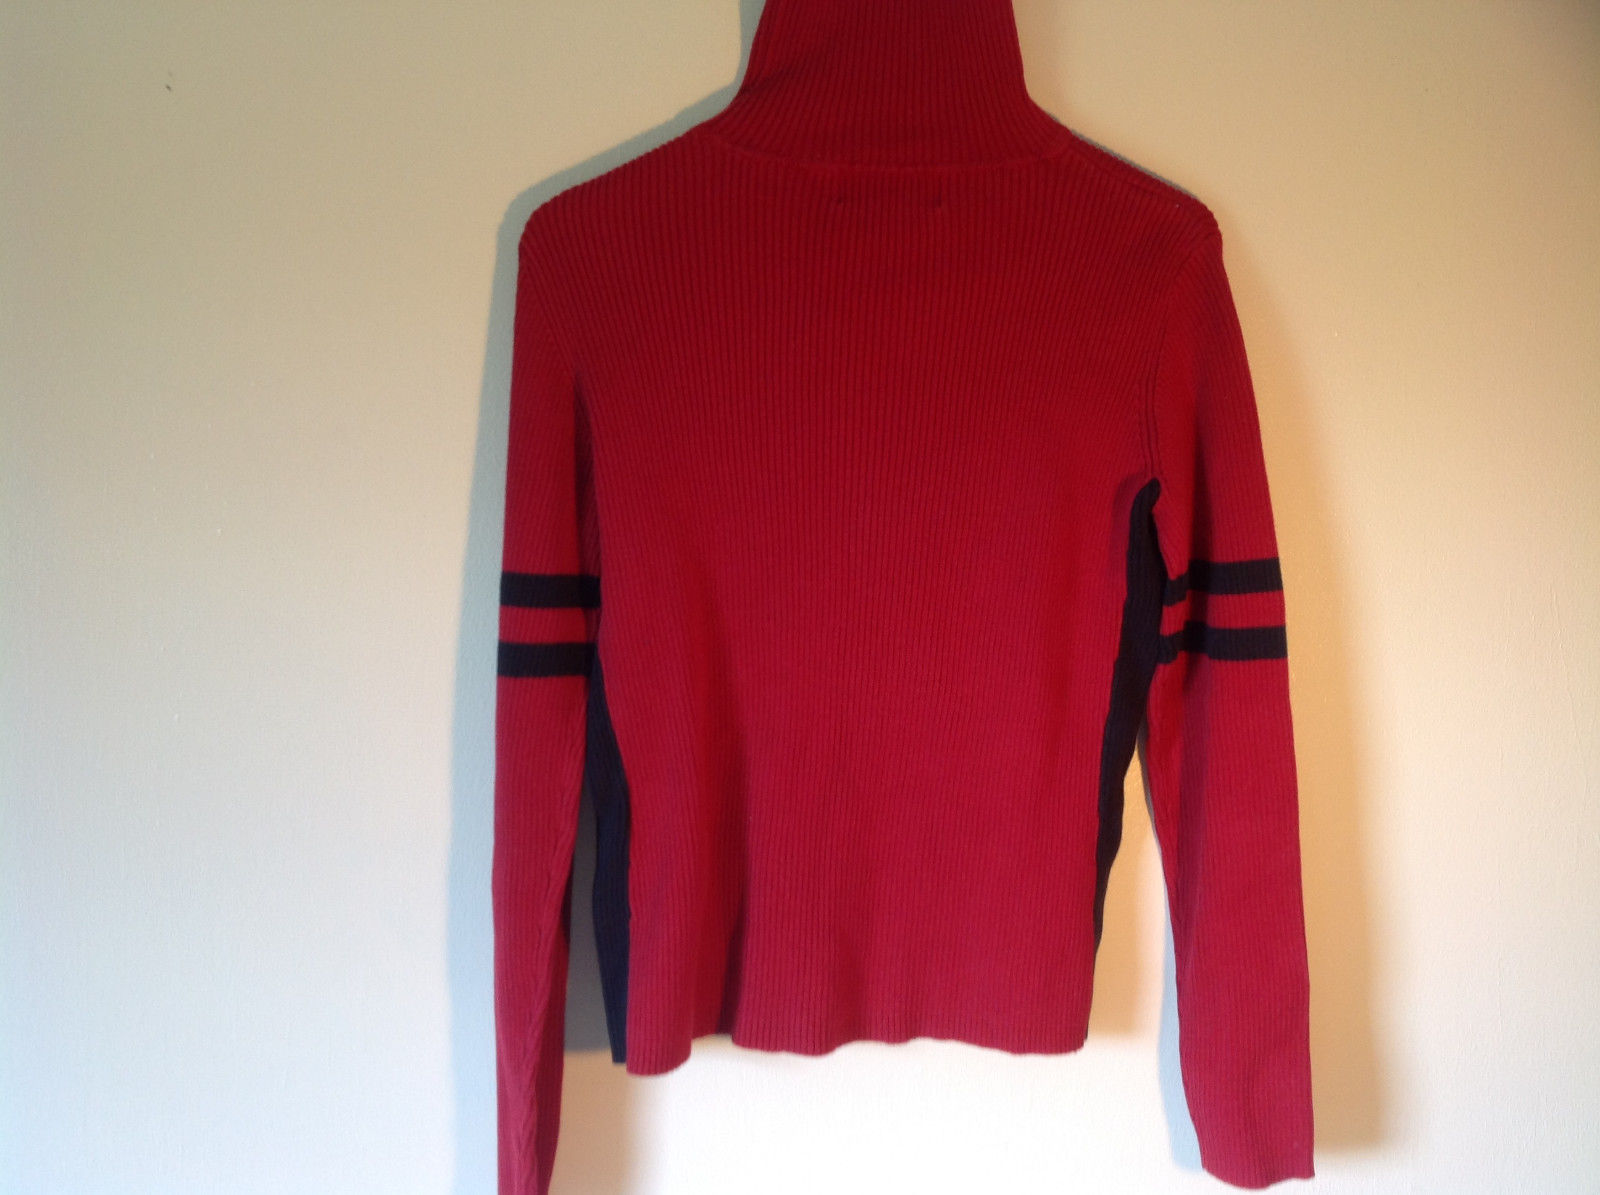 Red with Black Stripe on Arm Long Sleeve Turtleneck Sweater Casual Corner Size M